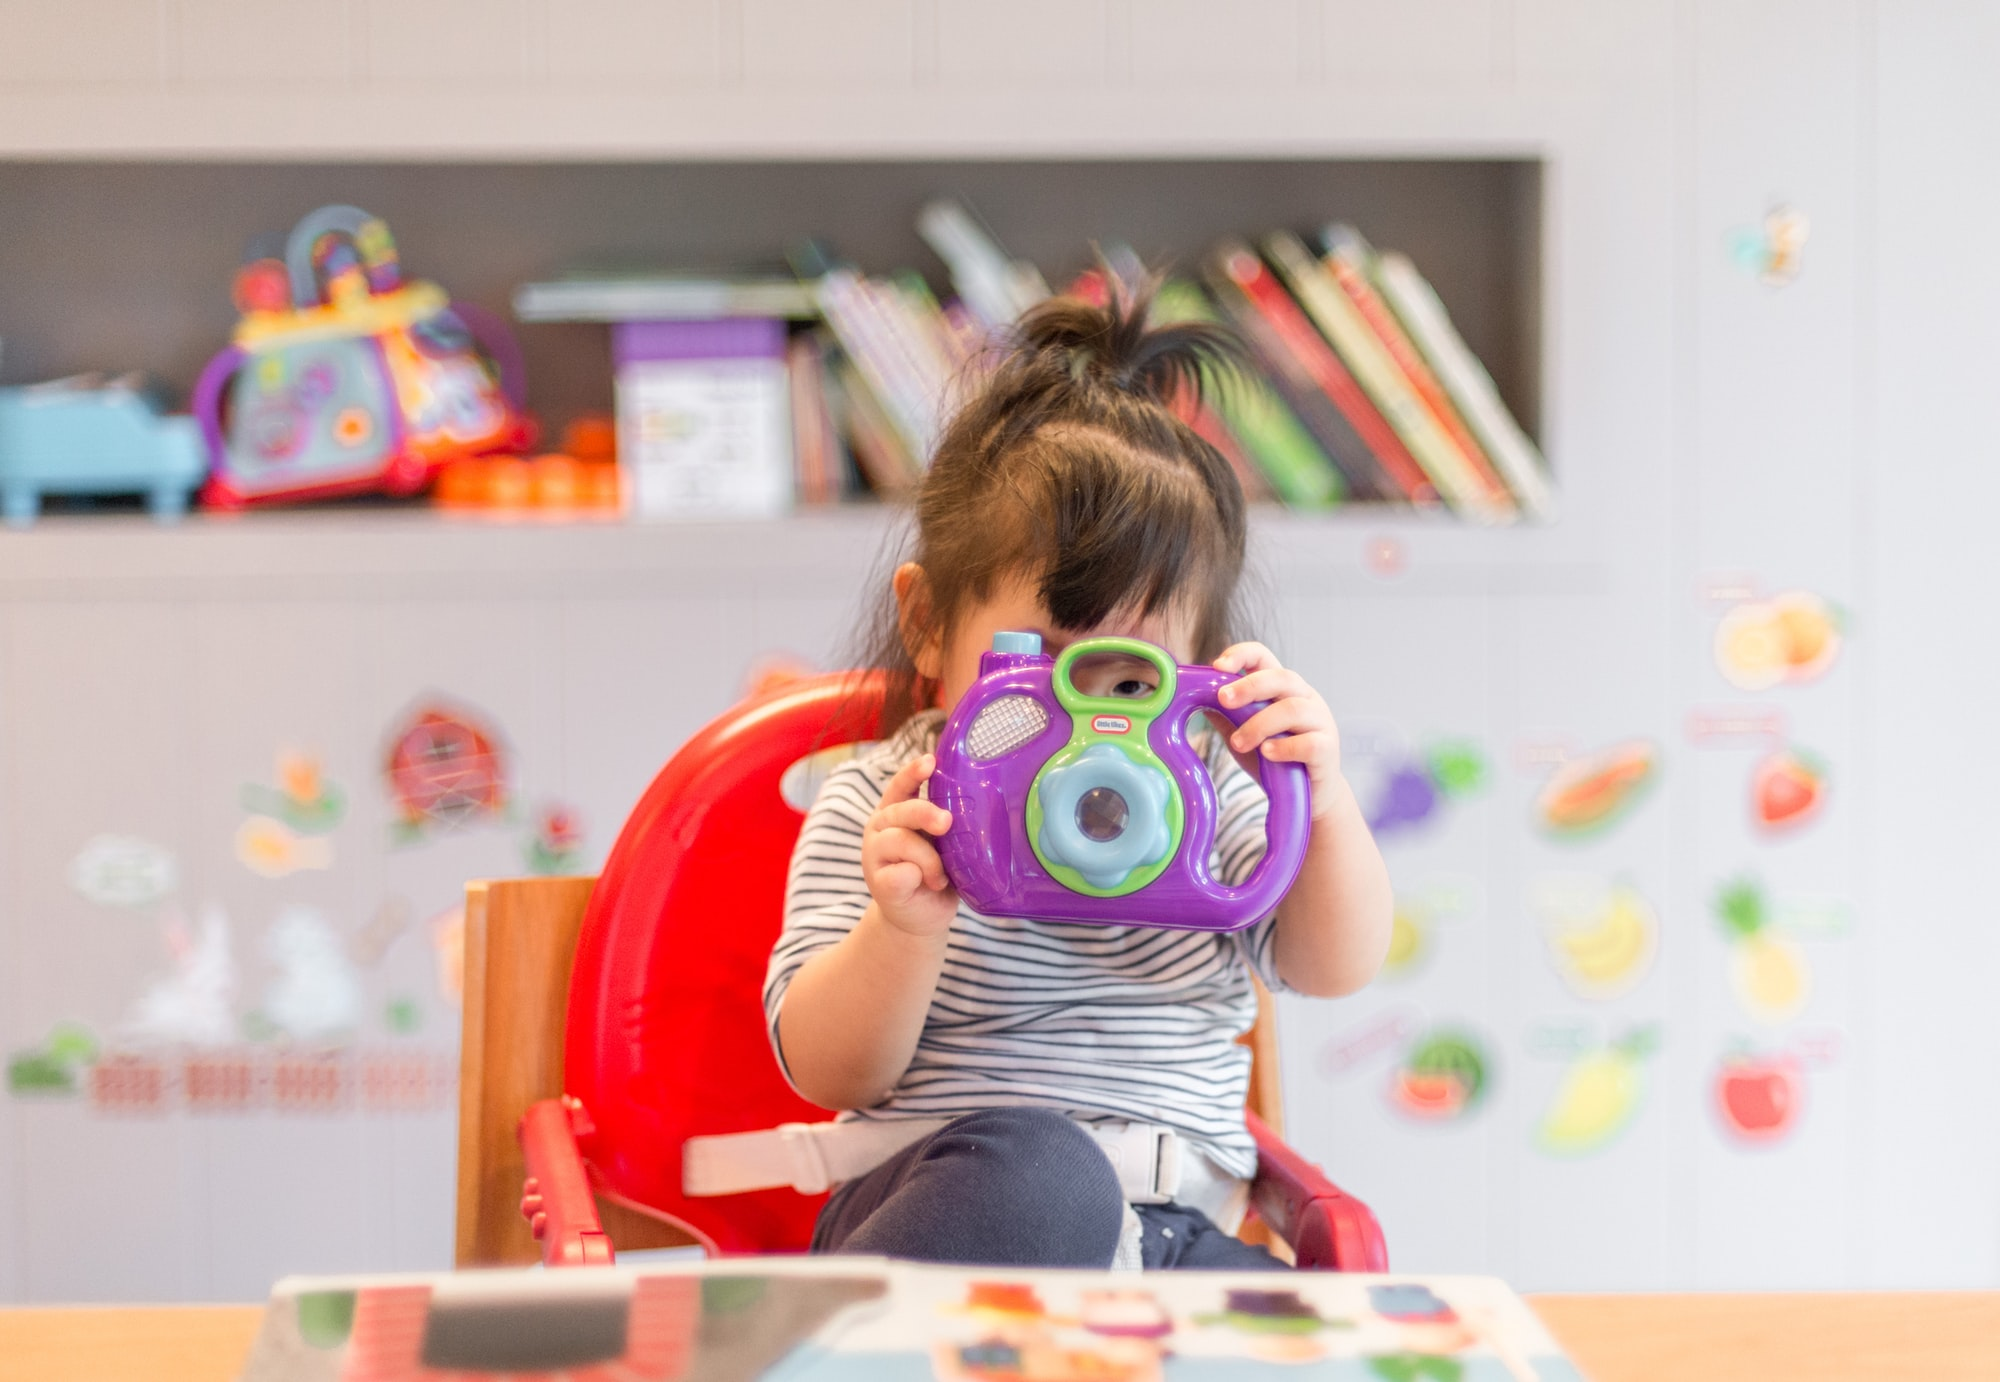 What's the future of work - according to children?